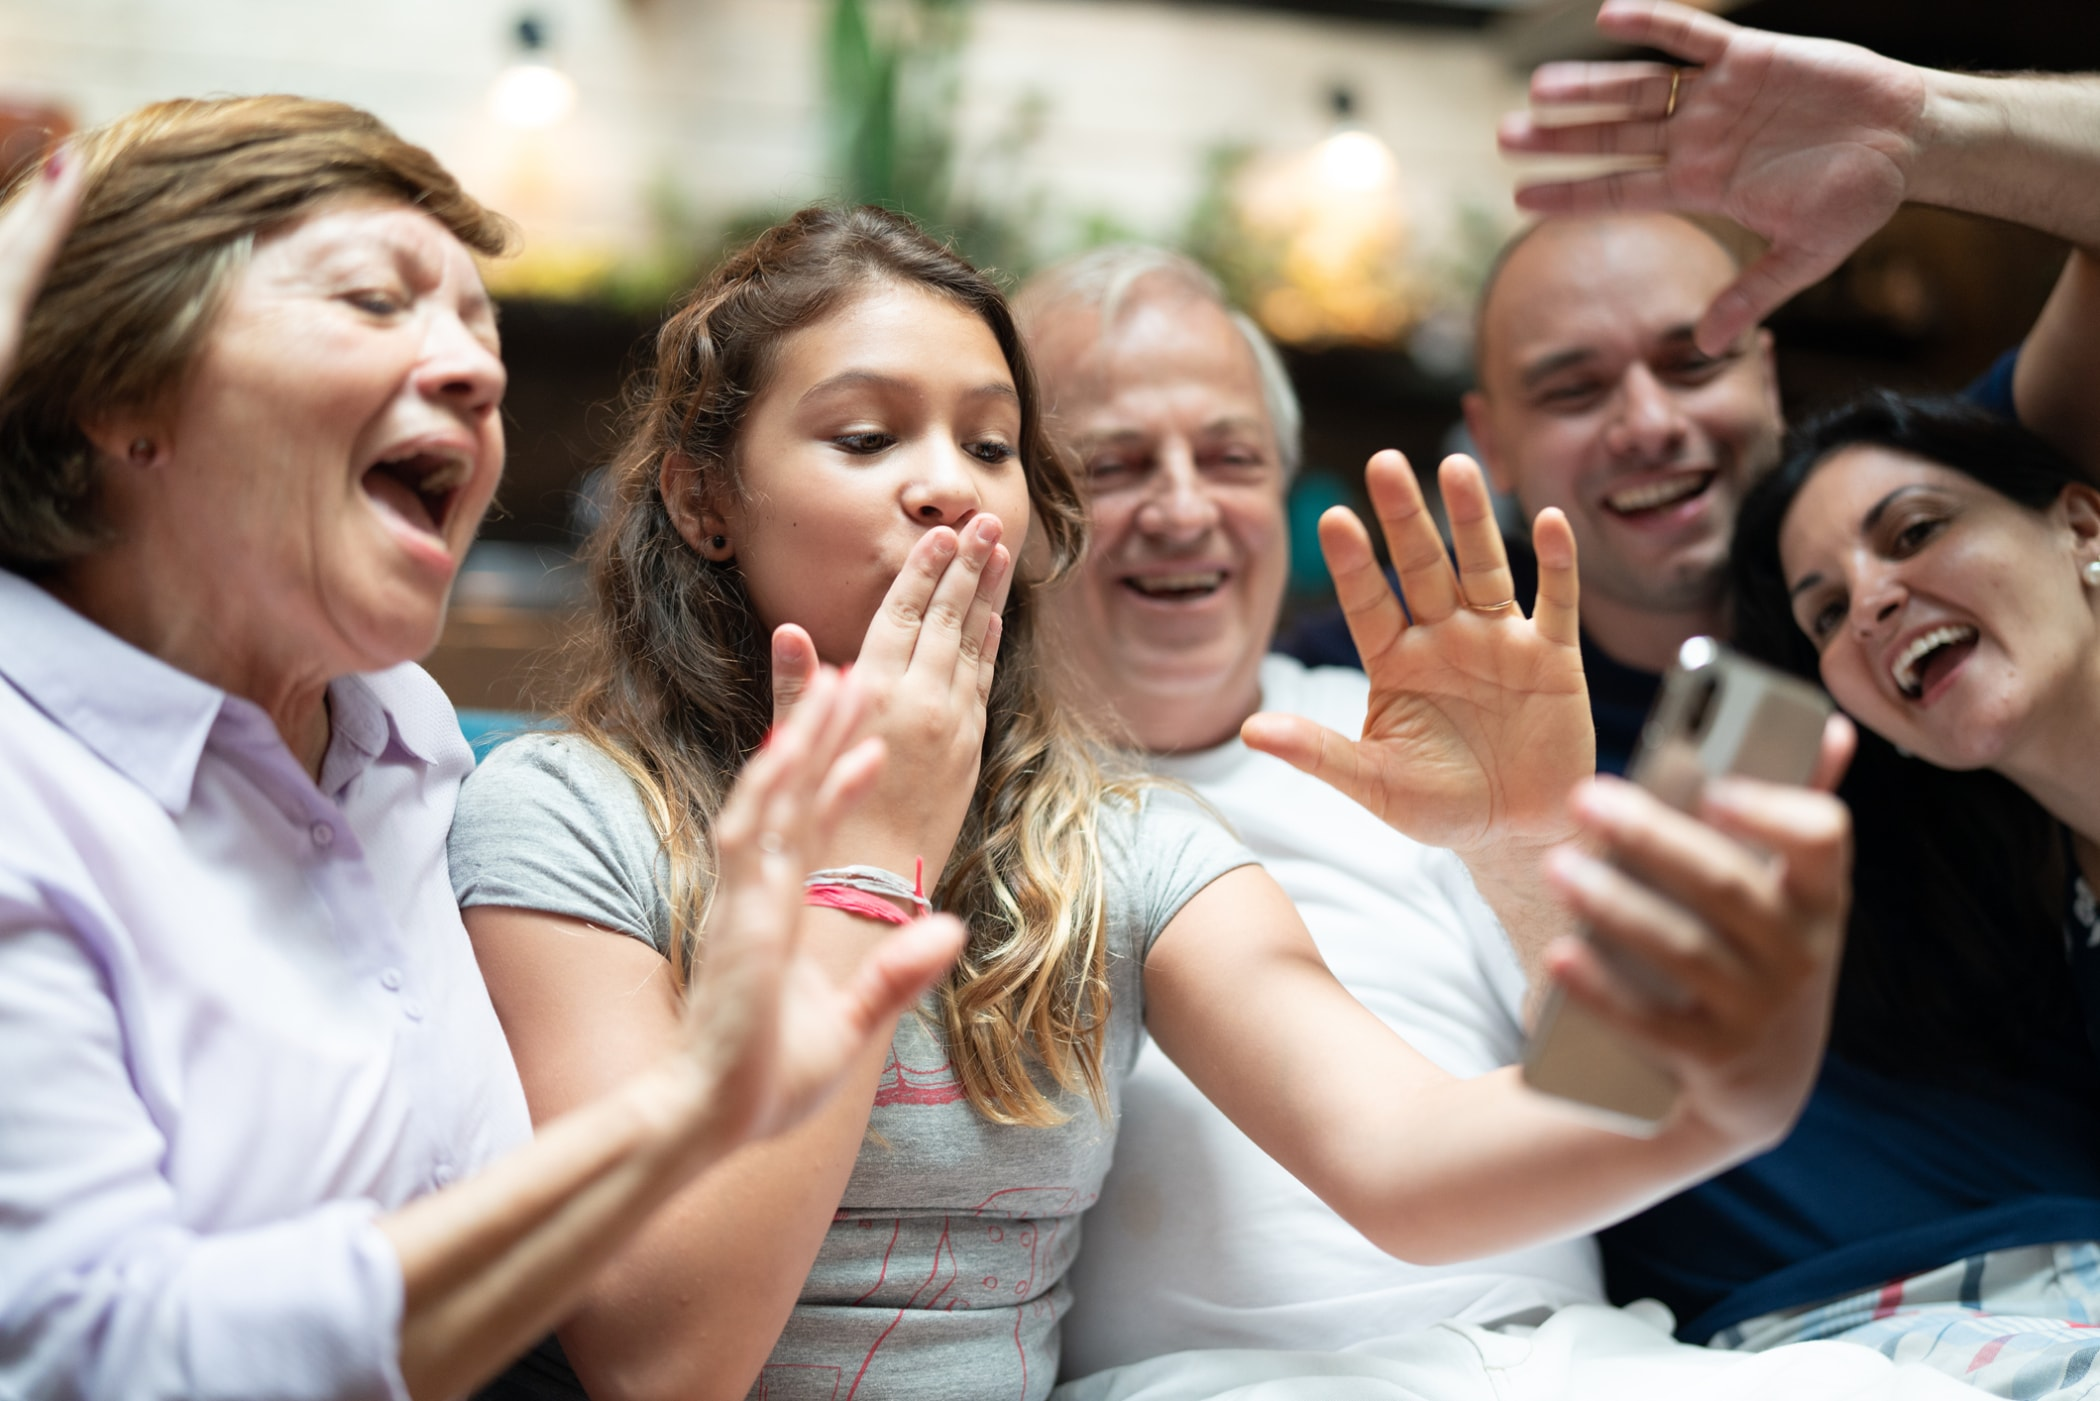 Parents who are happy can better support their children.